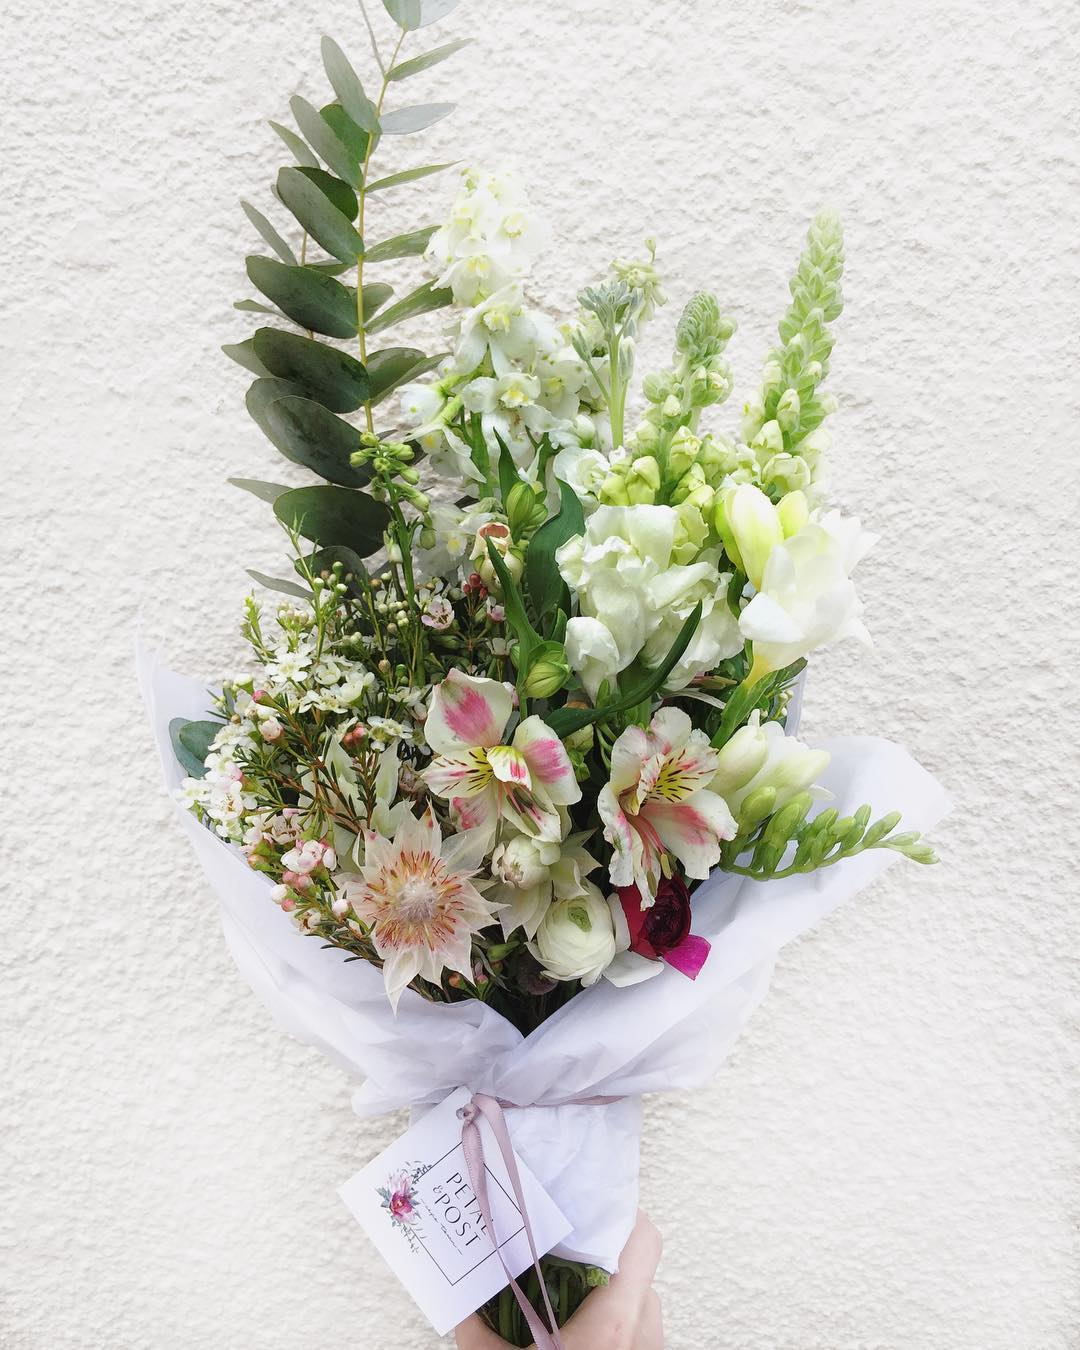 Today's dreamy Posy is alstroemerias with delphiniums, snapdragons,blushing bride, stocks, freesia, wax and penny gum 🌿Order before 12:30pm for delivery this afternoon.